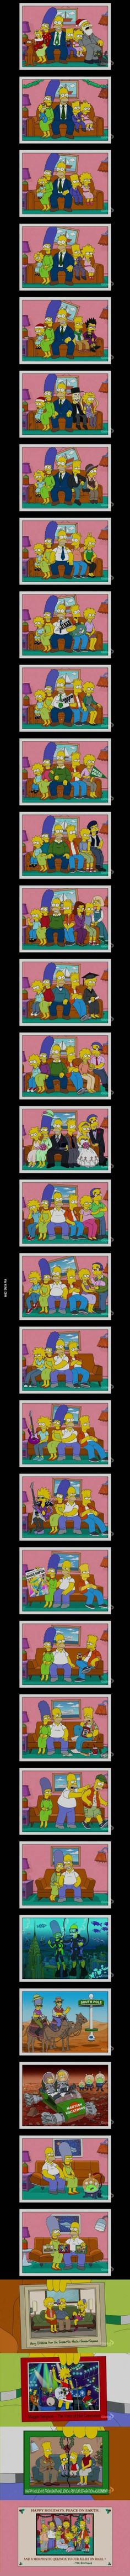 Nice Incest marge bart simpson comics something is